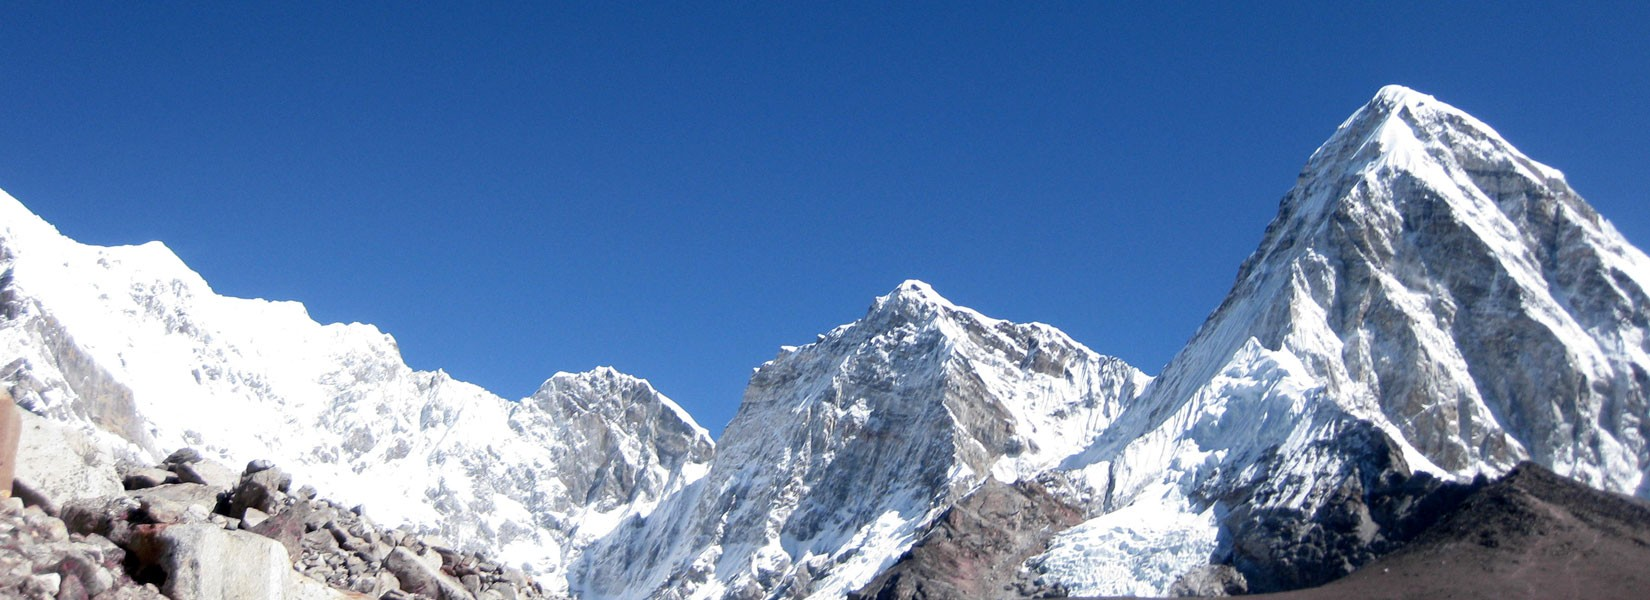 Everest Two Passes Trek (Cho La and Renjo La)